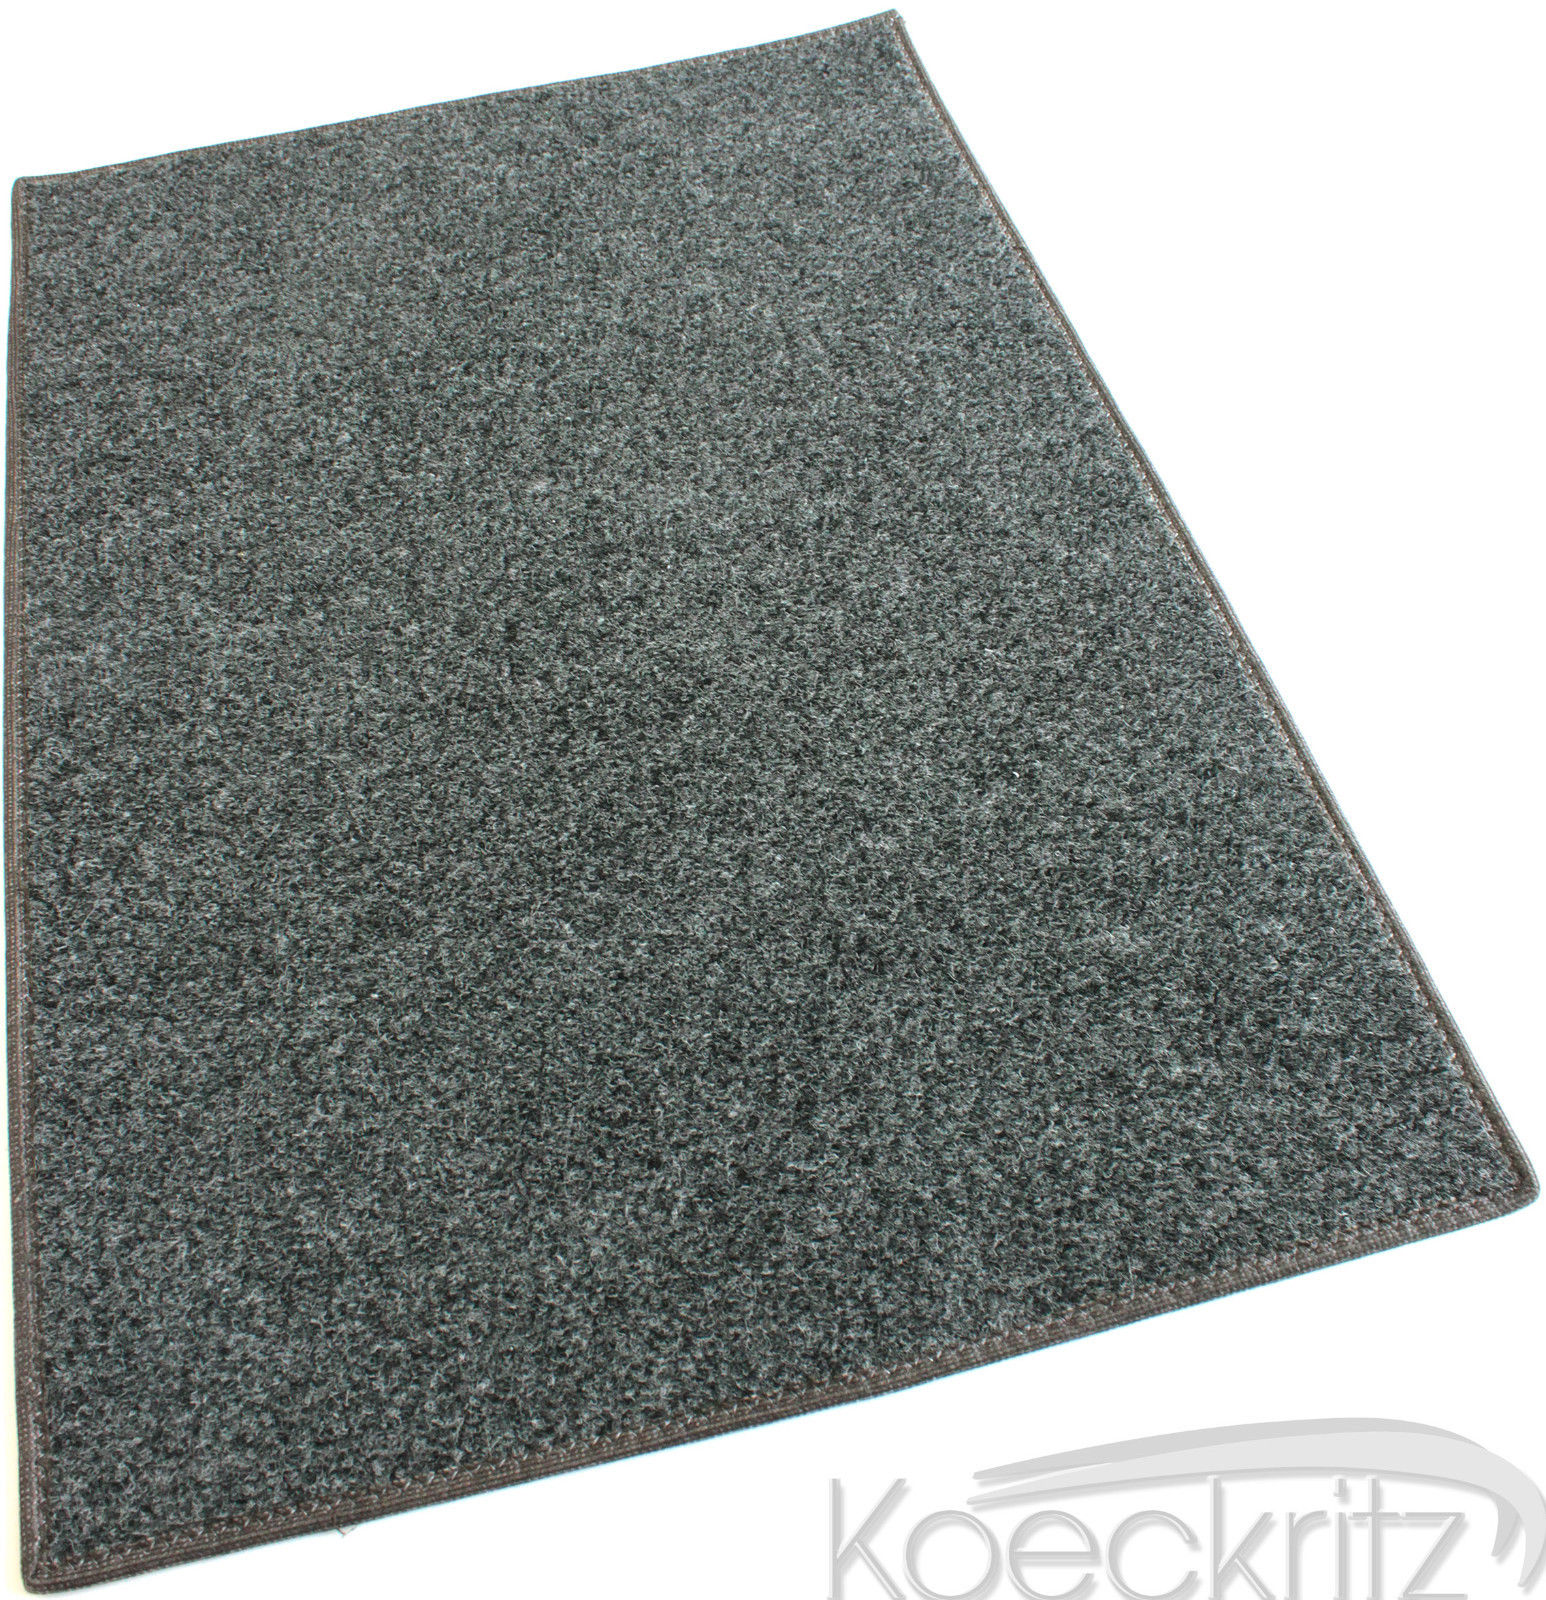 Smoke indoor outdoor durable soft area rug carpet for Best indoor outdoor carpet